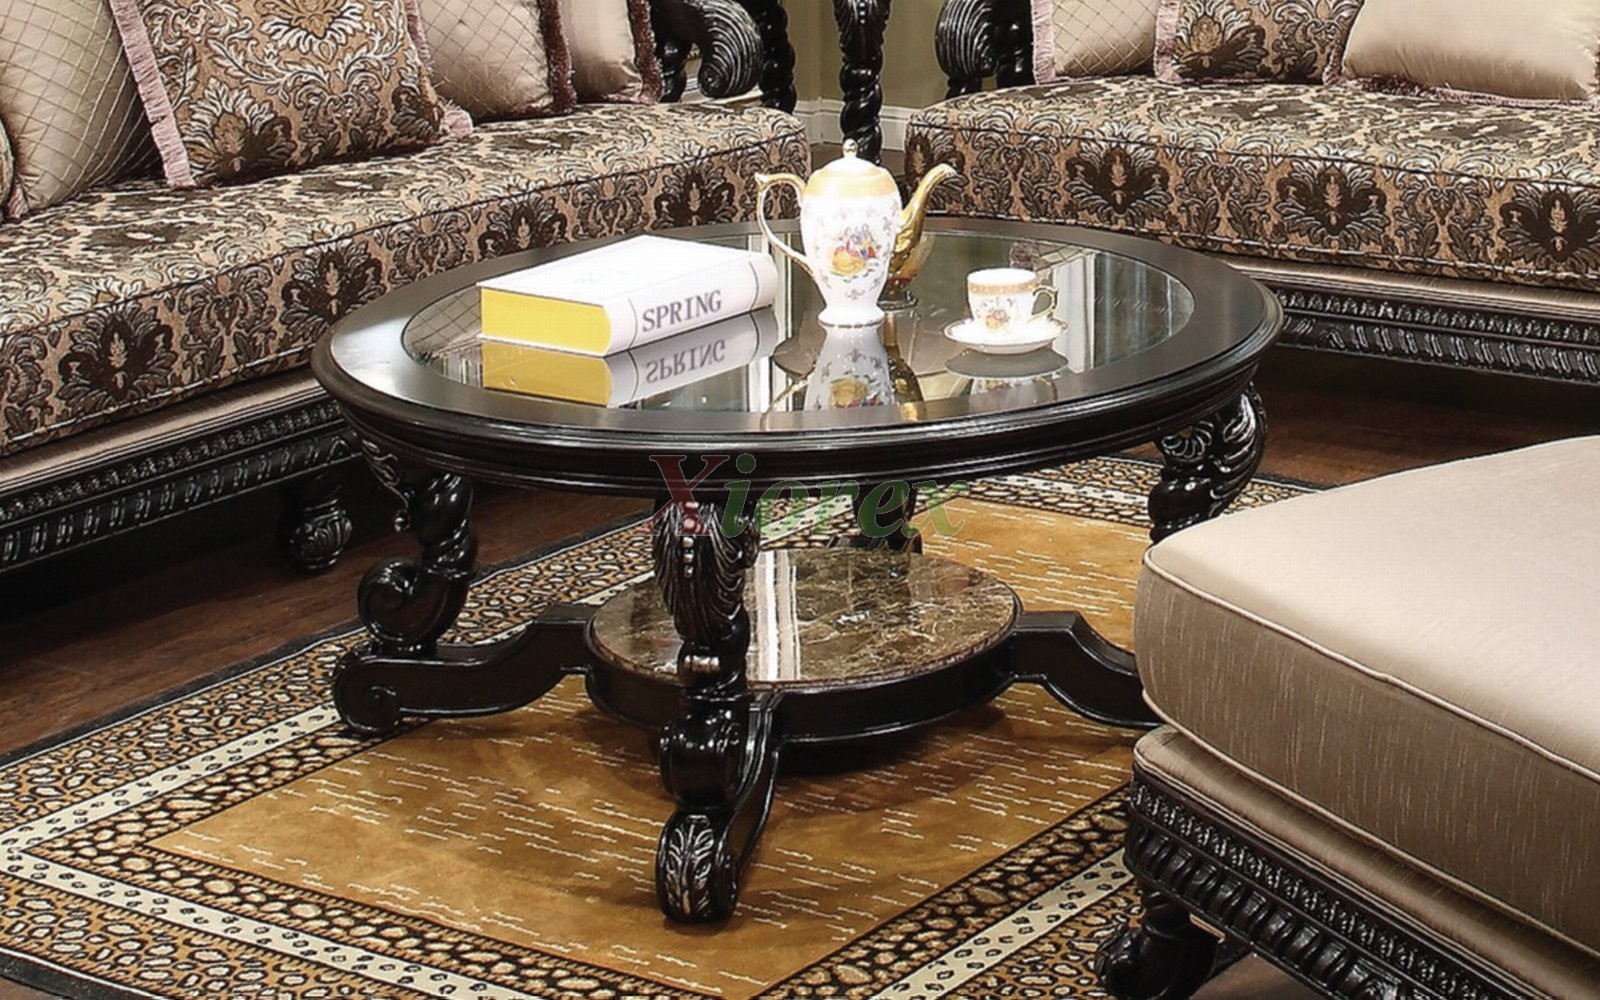 With Alya Round Coffee Table Toronto, You Will Enjoy The Added Bonus Of A  Timeless Classic Focal Point In Your Living Room. This Table Features A Glass  Top ...